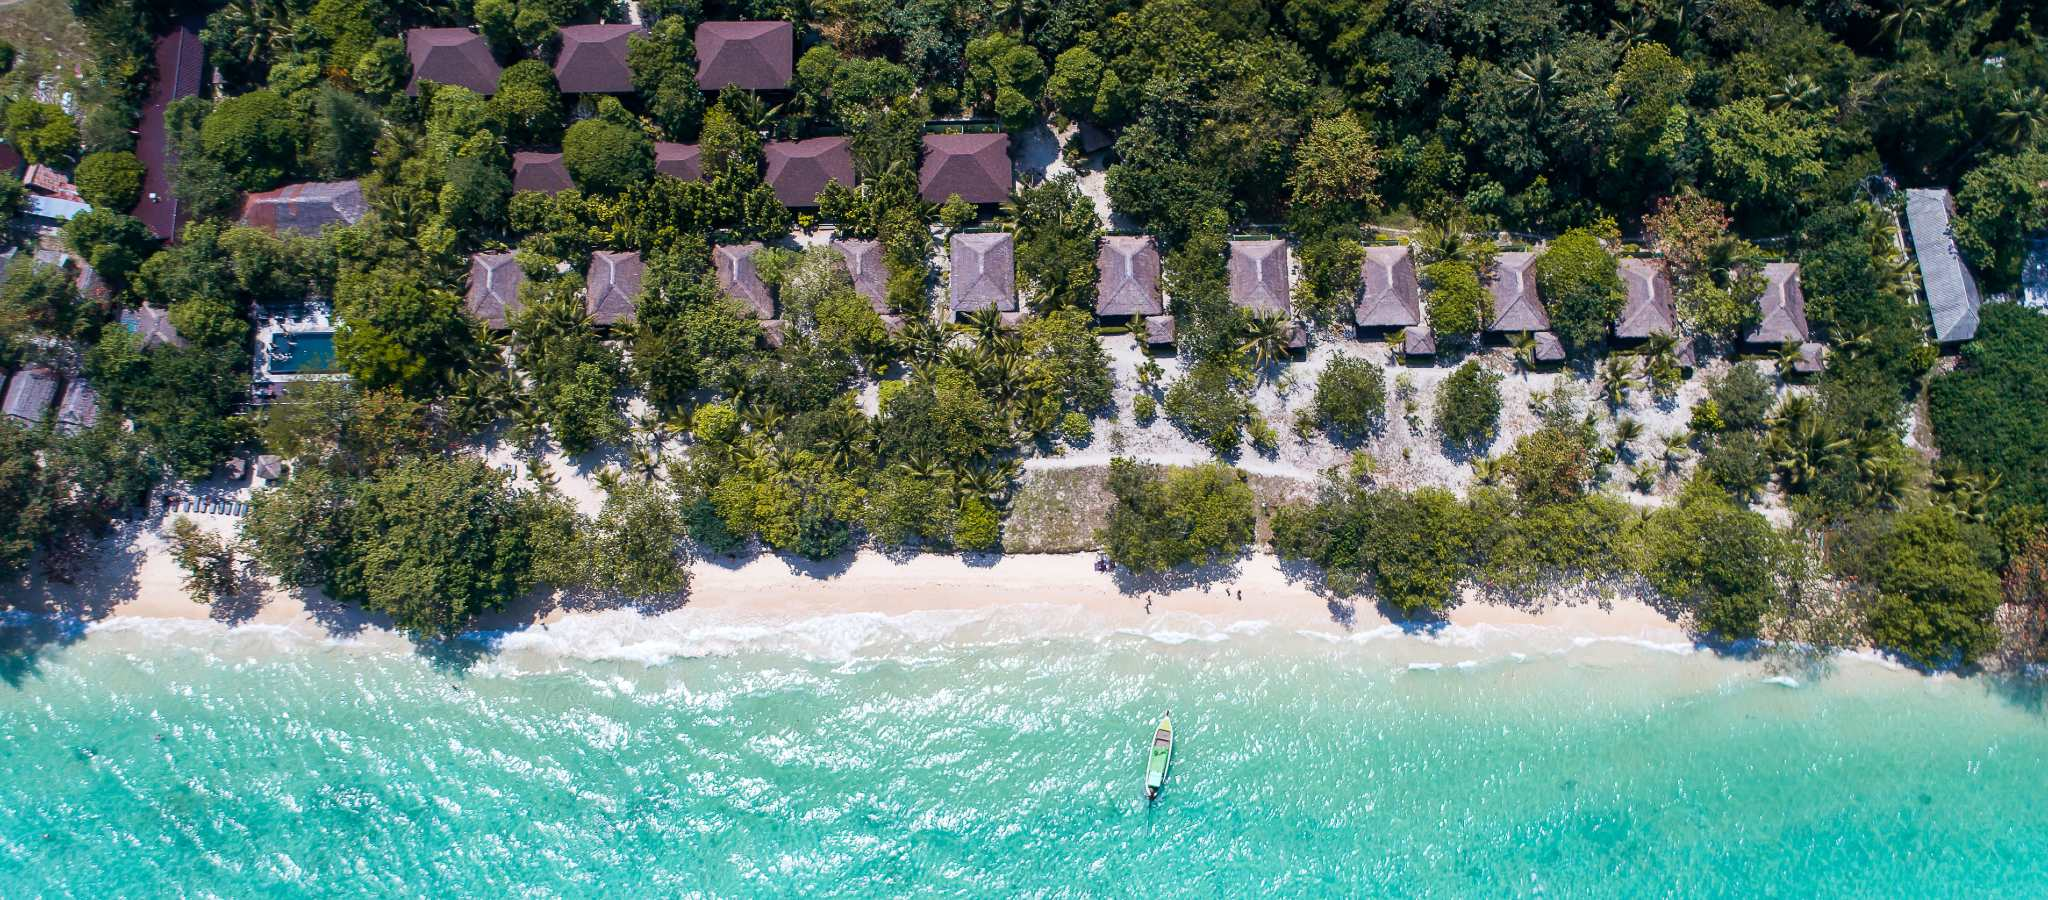 The grounds of The Sevenseas Resort on Koh Kradan seen from a drone